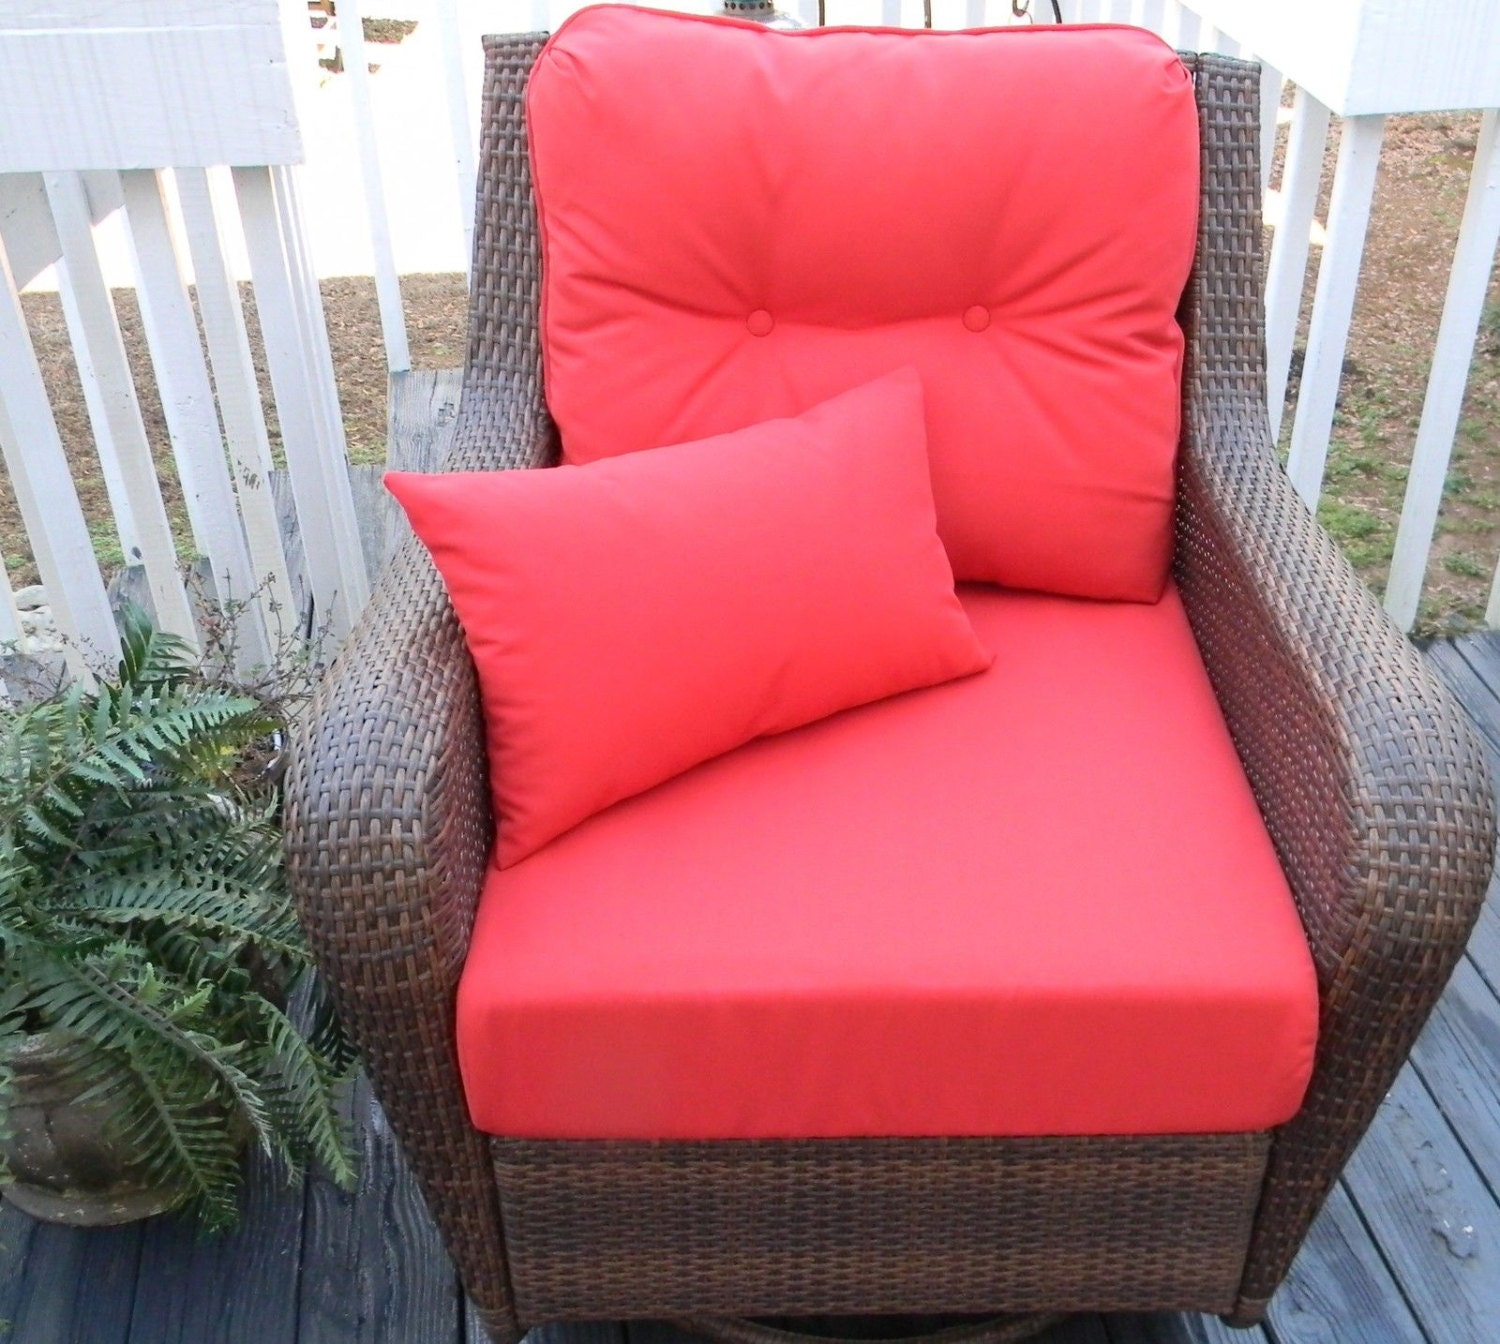 Indoor outdoor cushions for deep seating seat back - Seat cushions for patio furniture ...